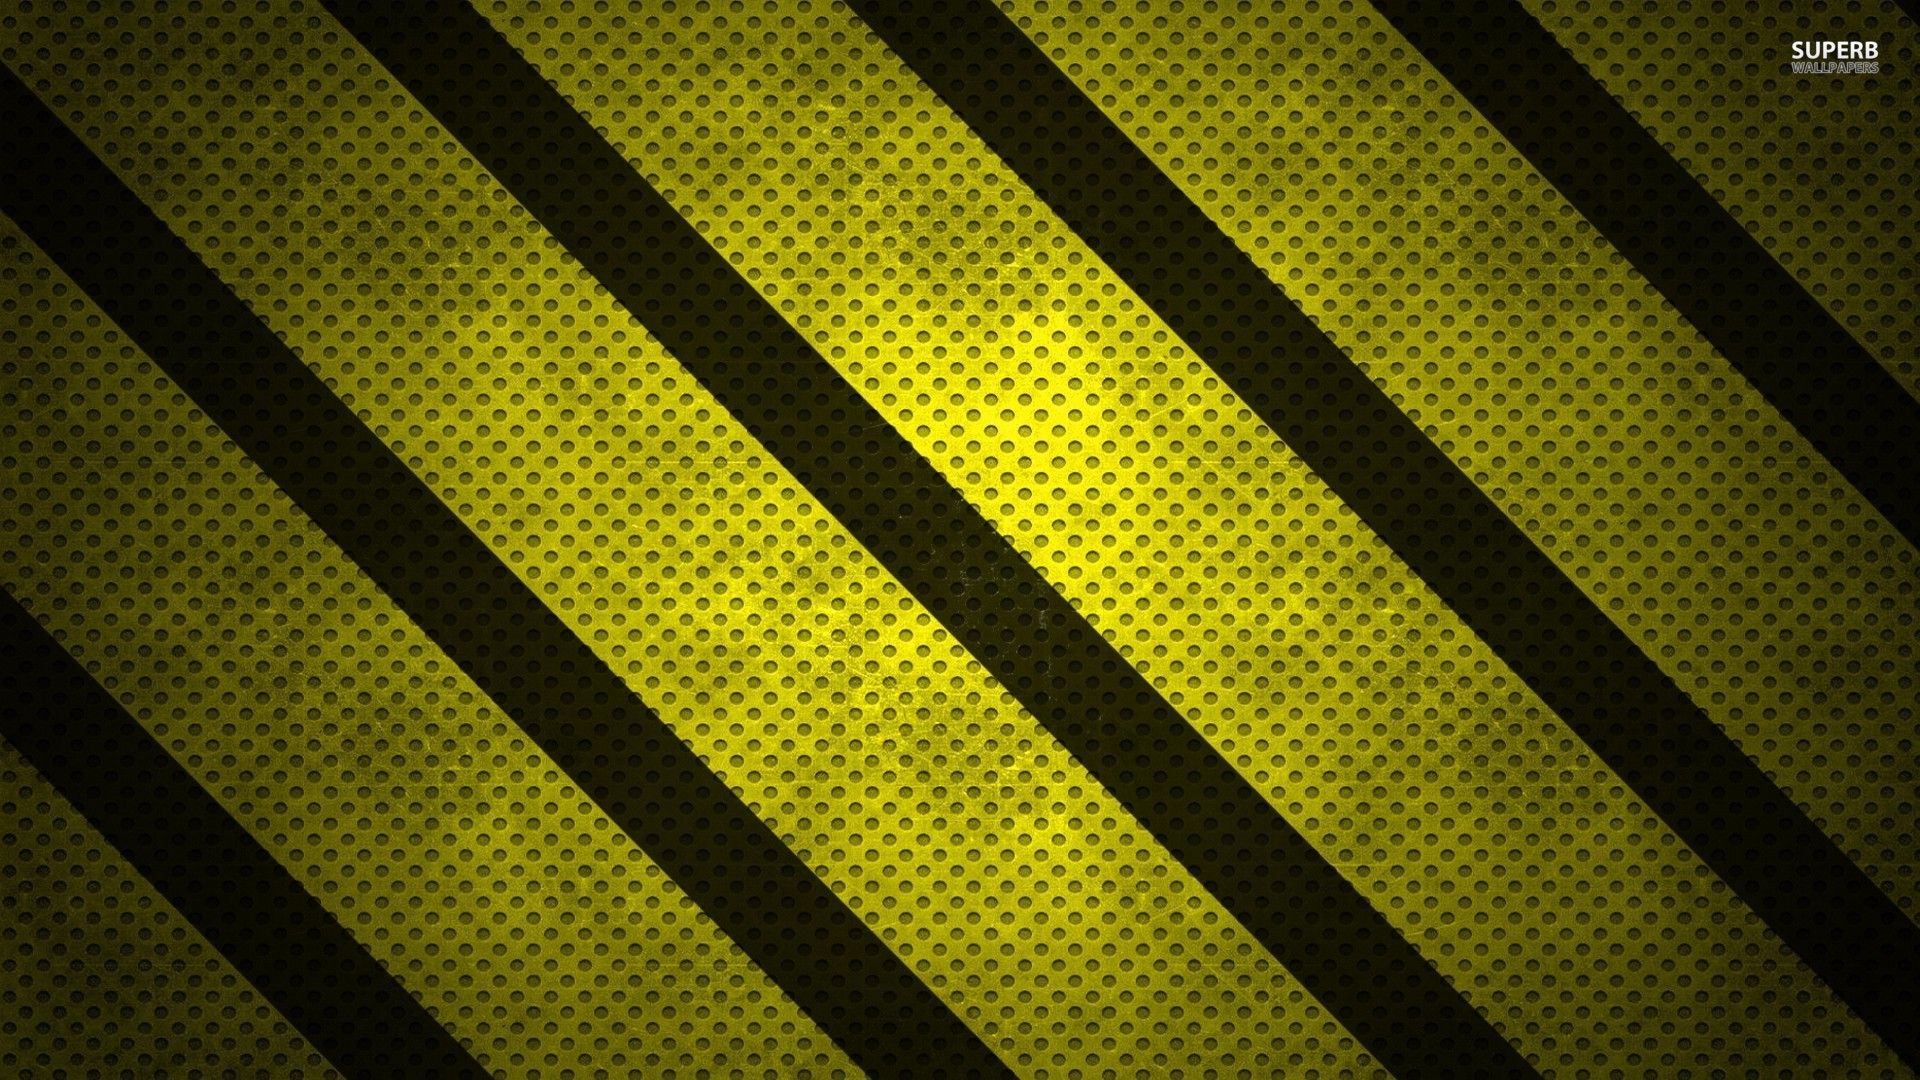 Yellow Abstract Background Wallpaper 1920x1080 Wallpapers 46